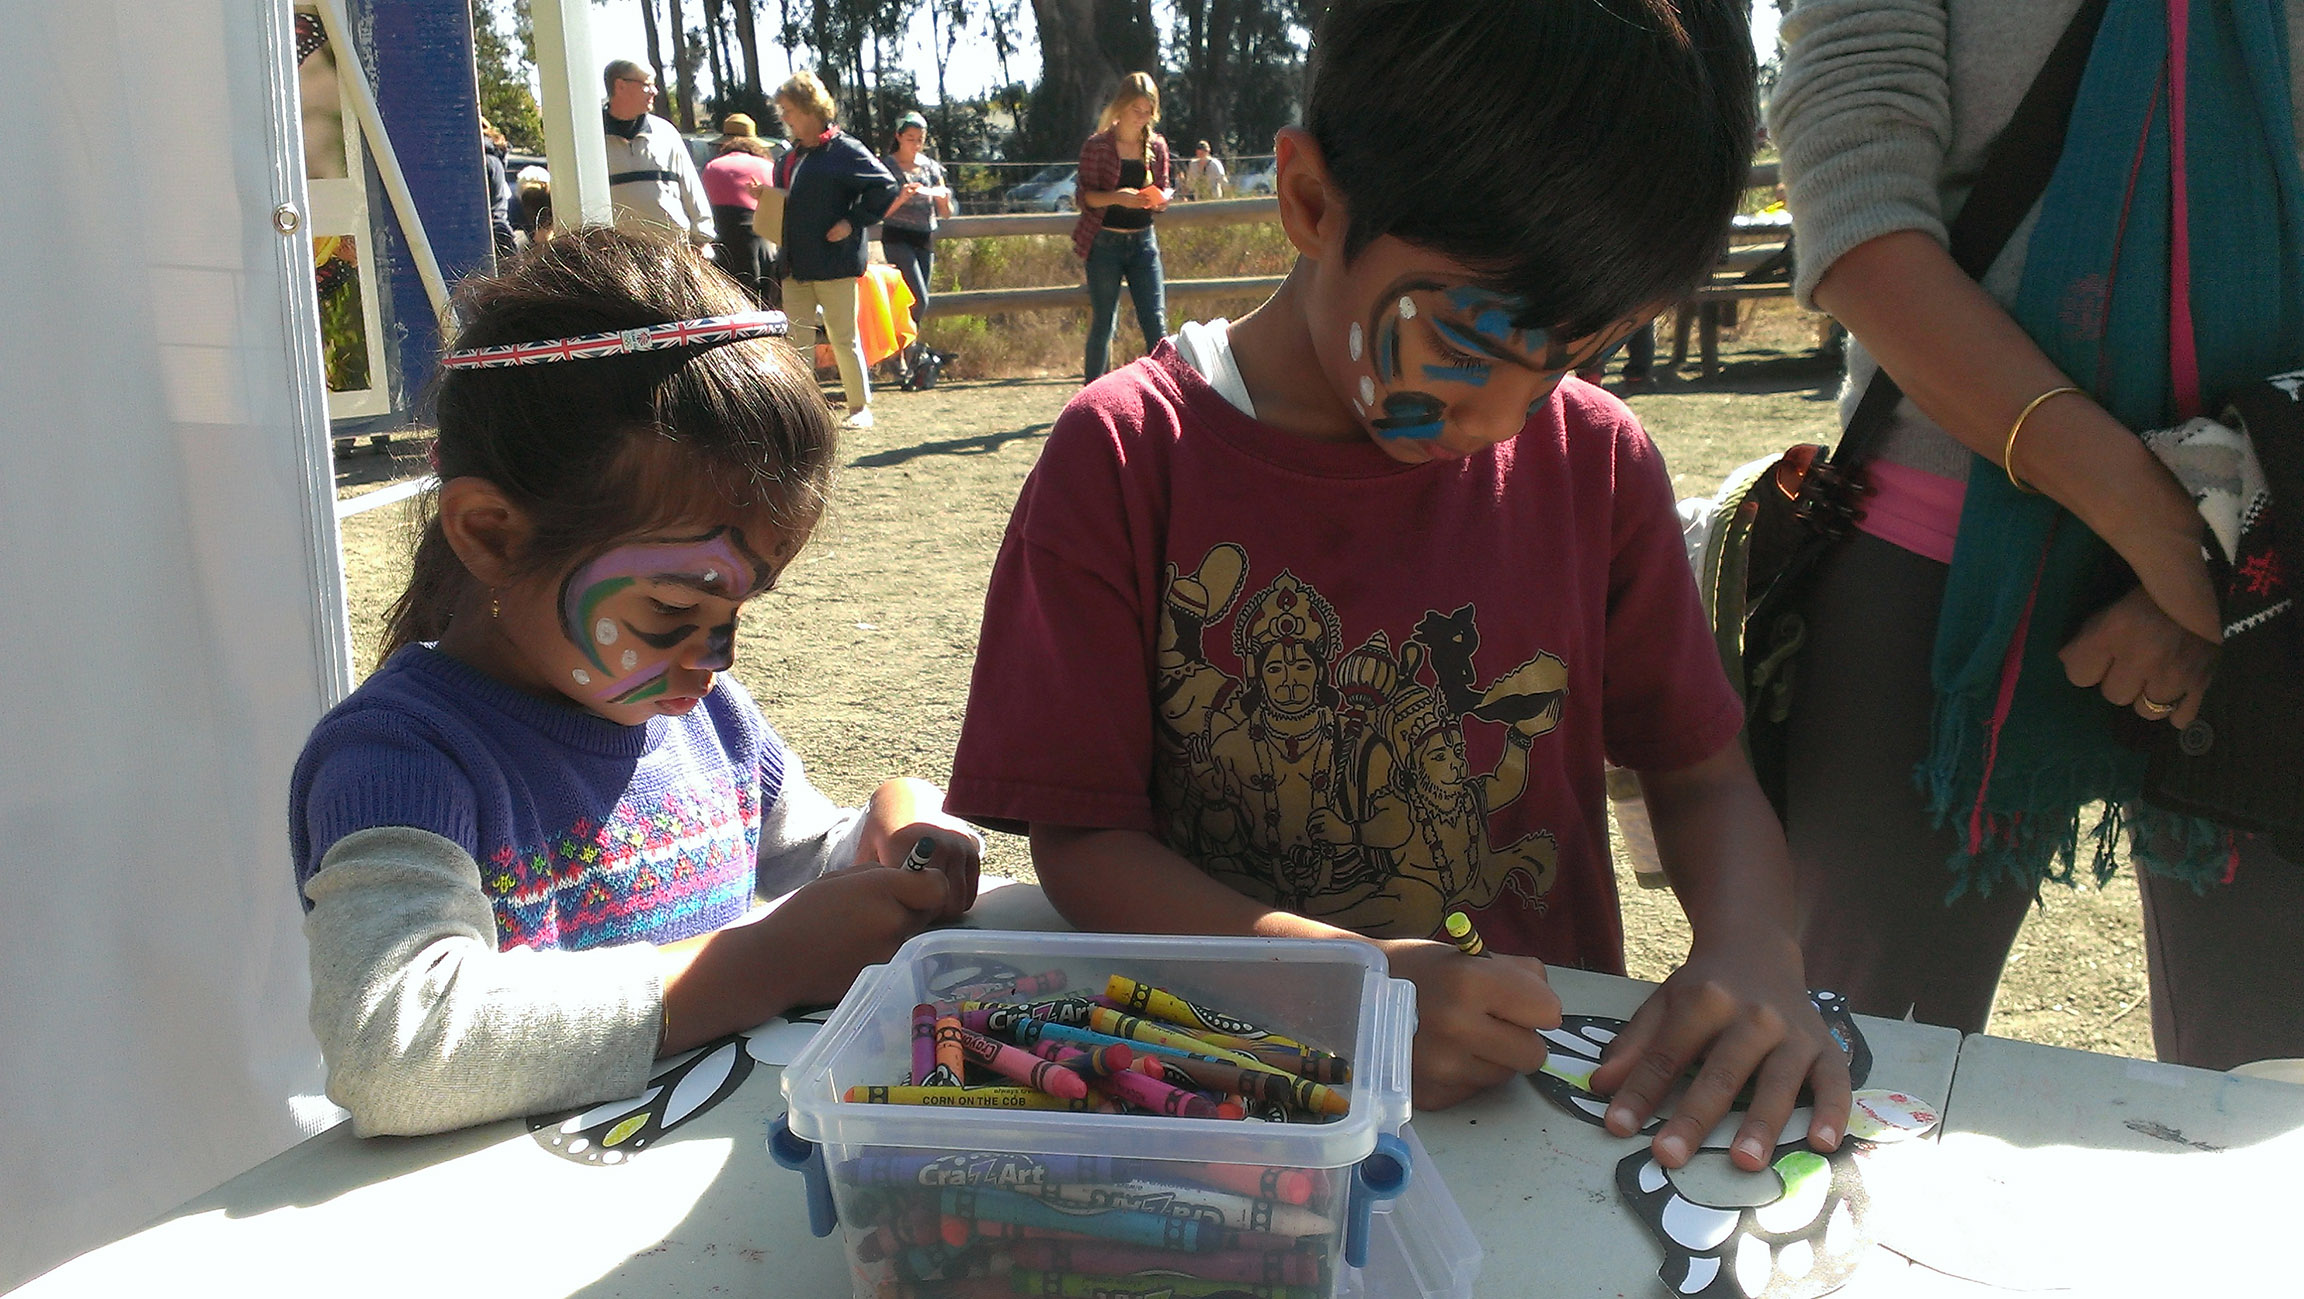 Two children, their faces decorated with face paints, concentrate on coloring monarch butterfly drawings